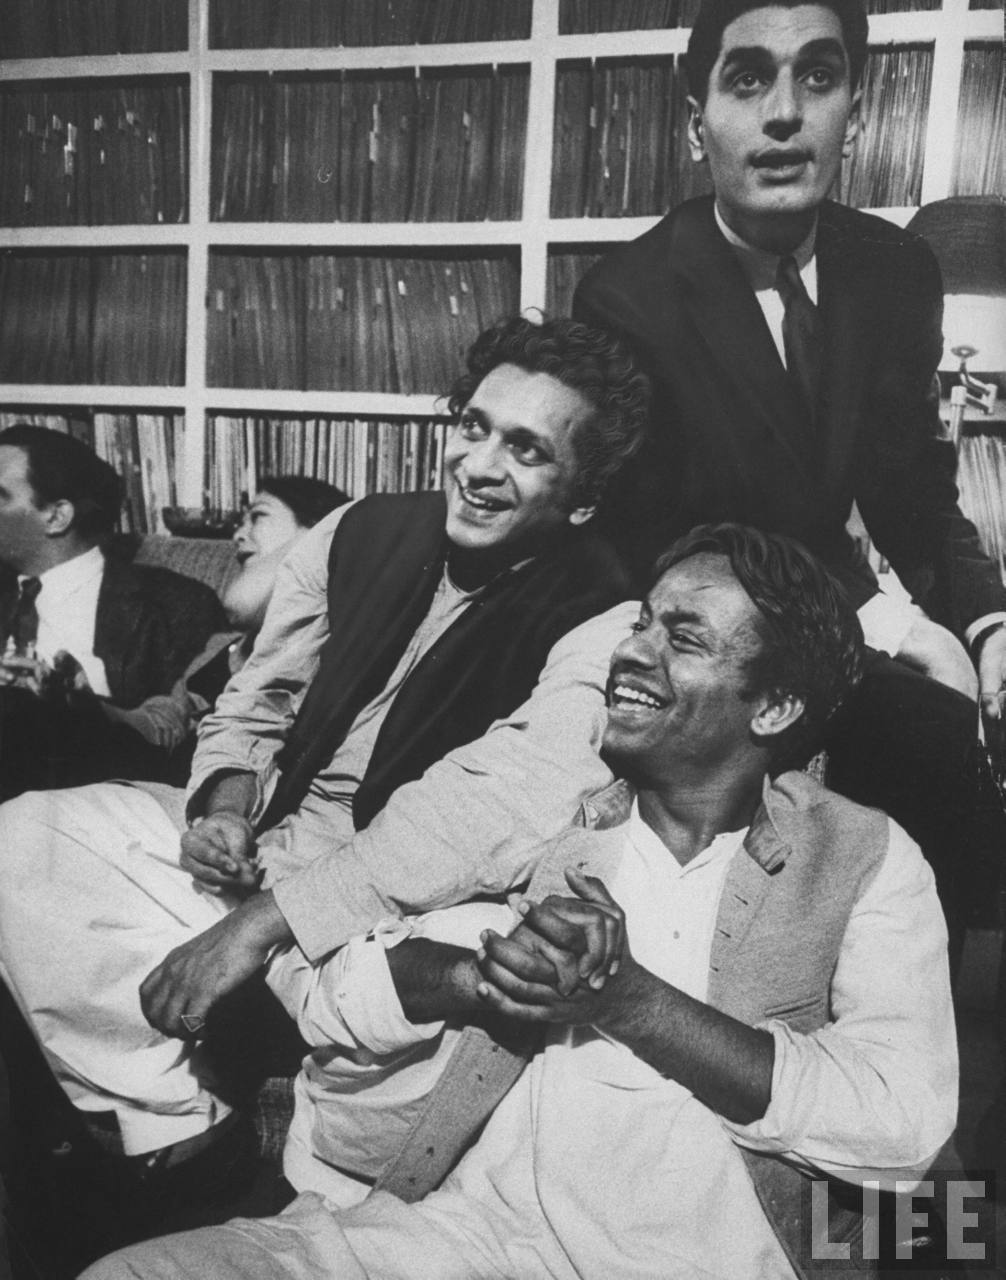 Pandit Chatur Lal with Pandi Ravi Shankar in a light mood Source: Life Archive hosted by Google